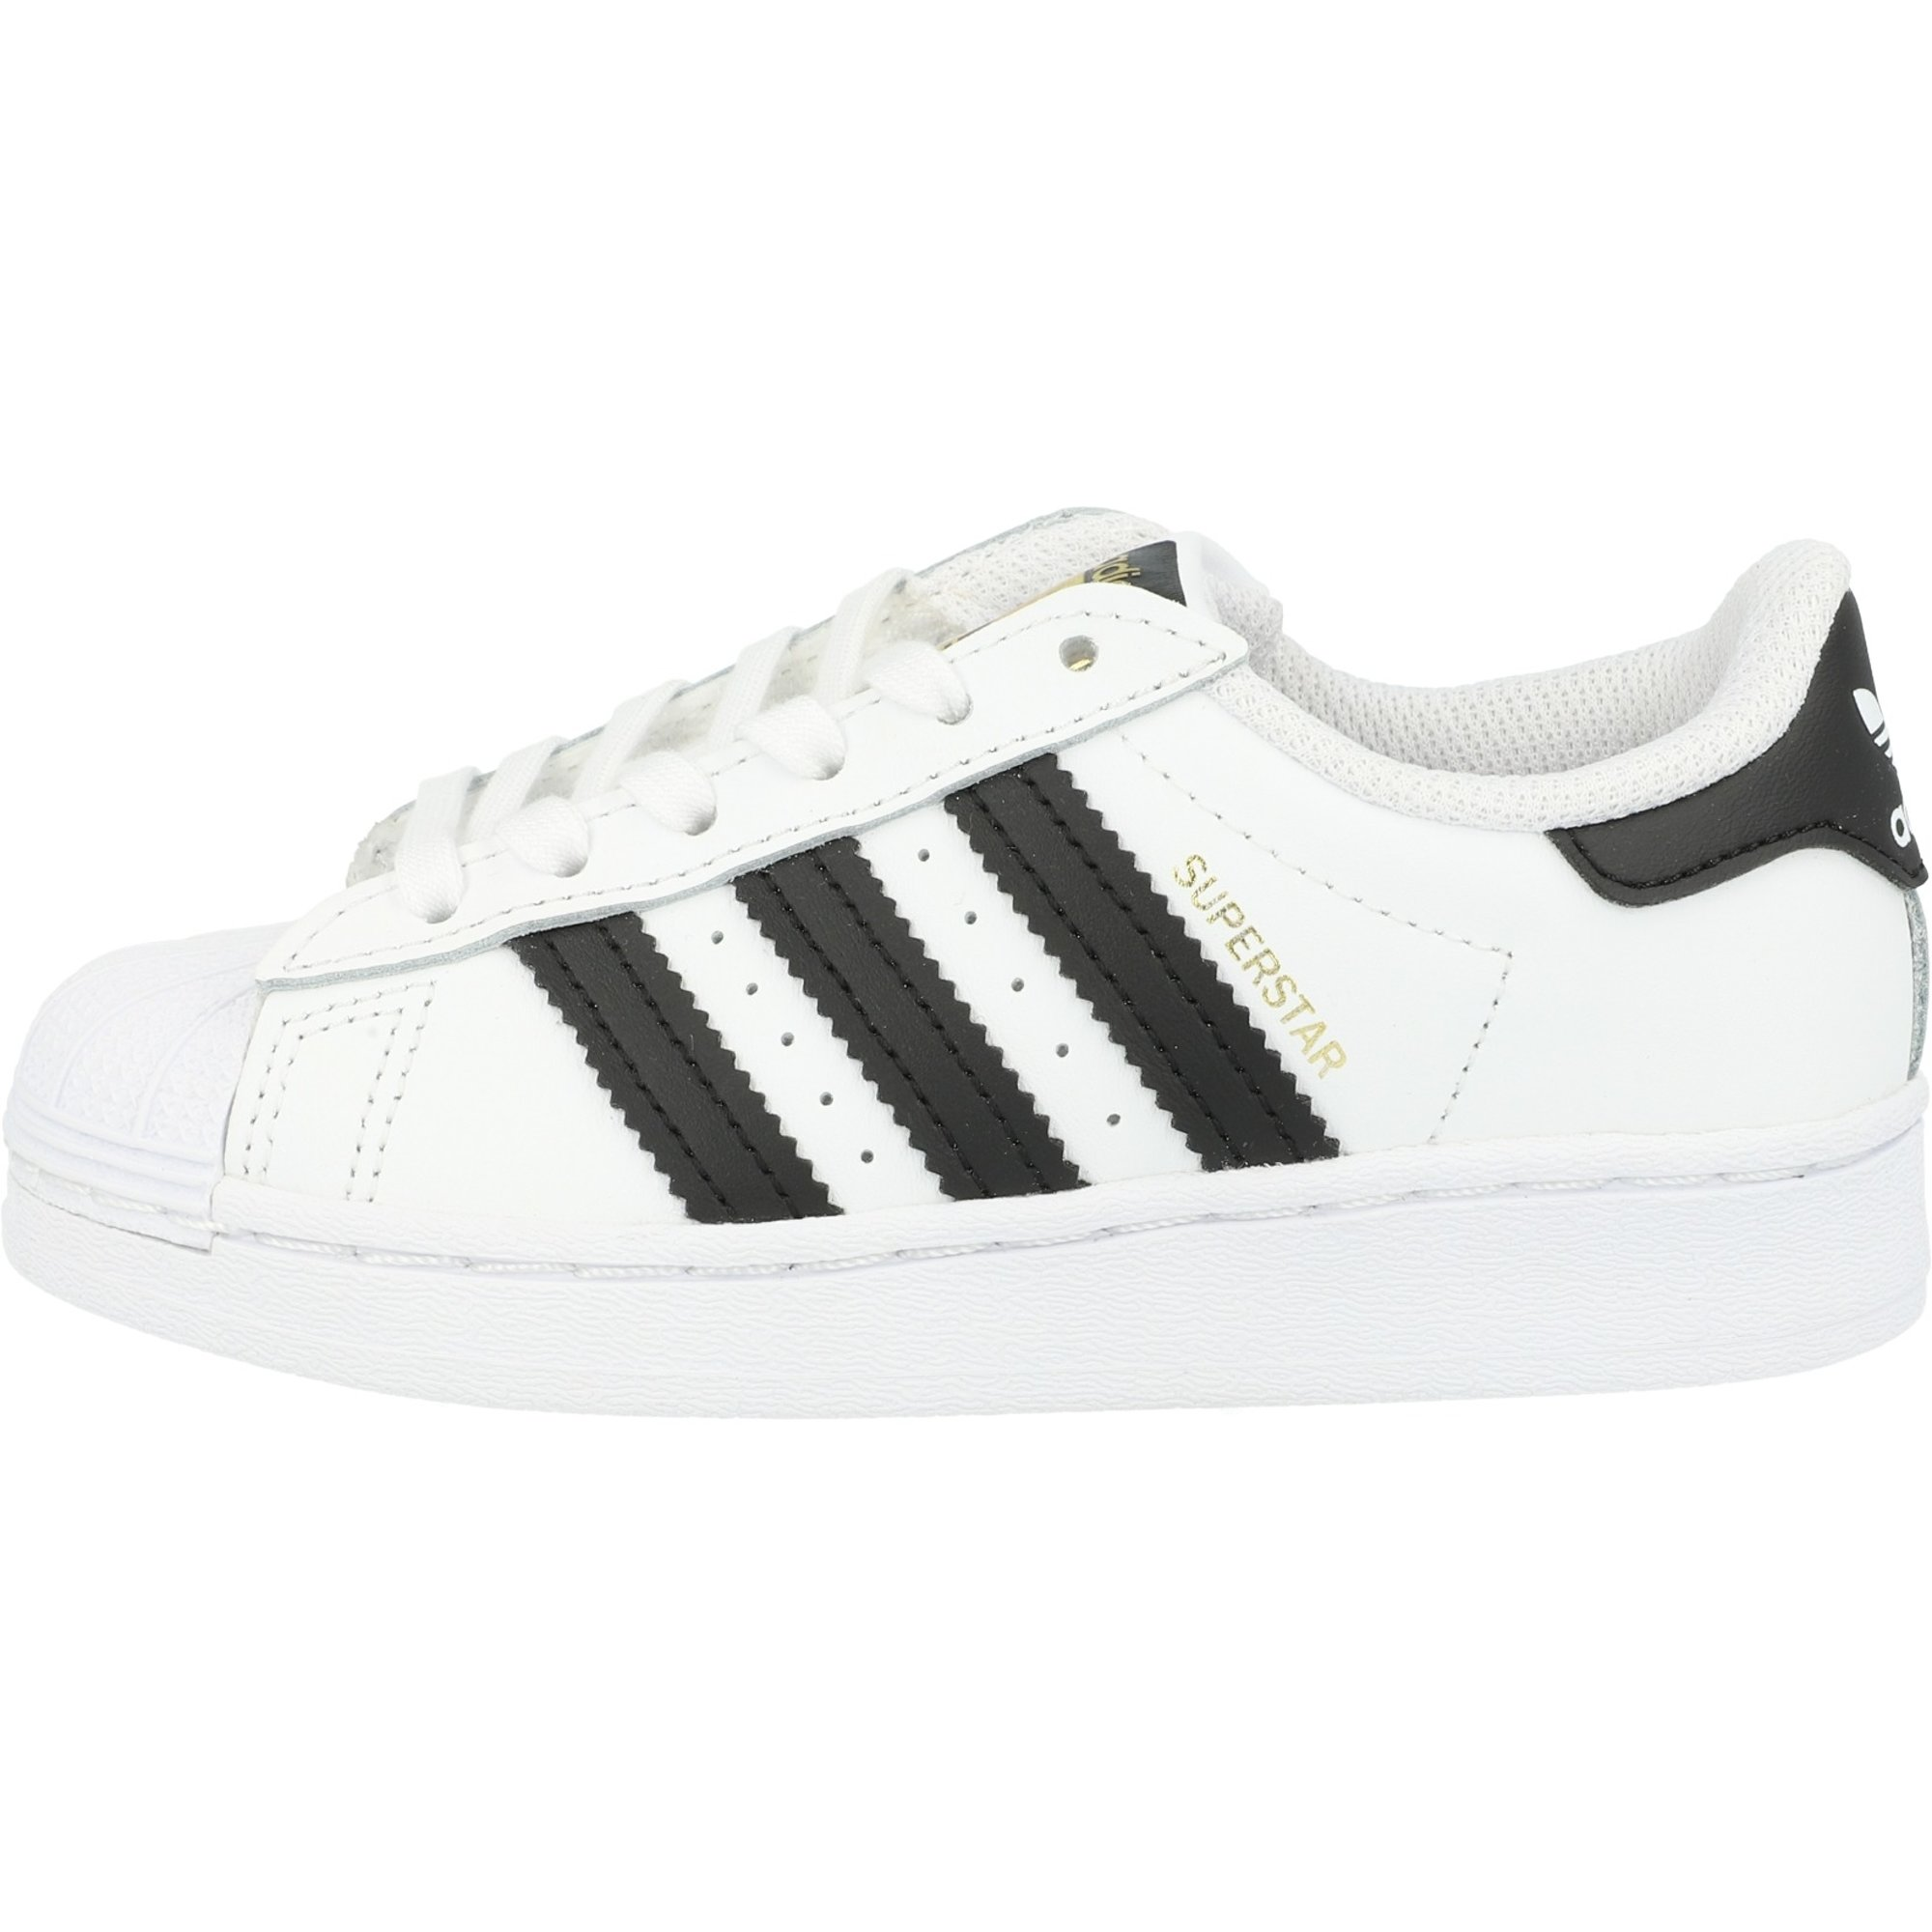 adidas Originals Superstar C White/Core Black Leather